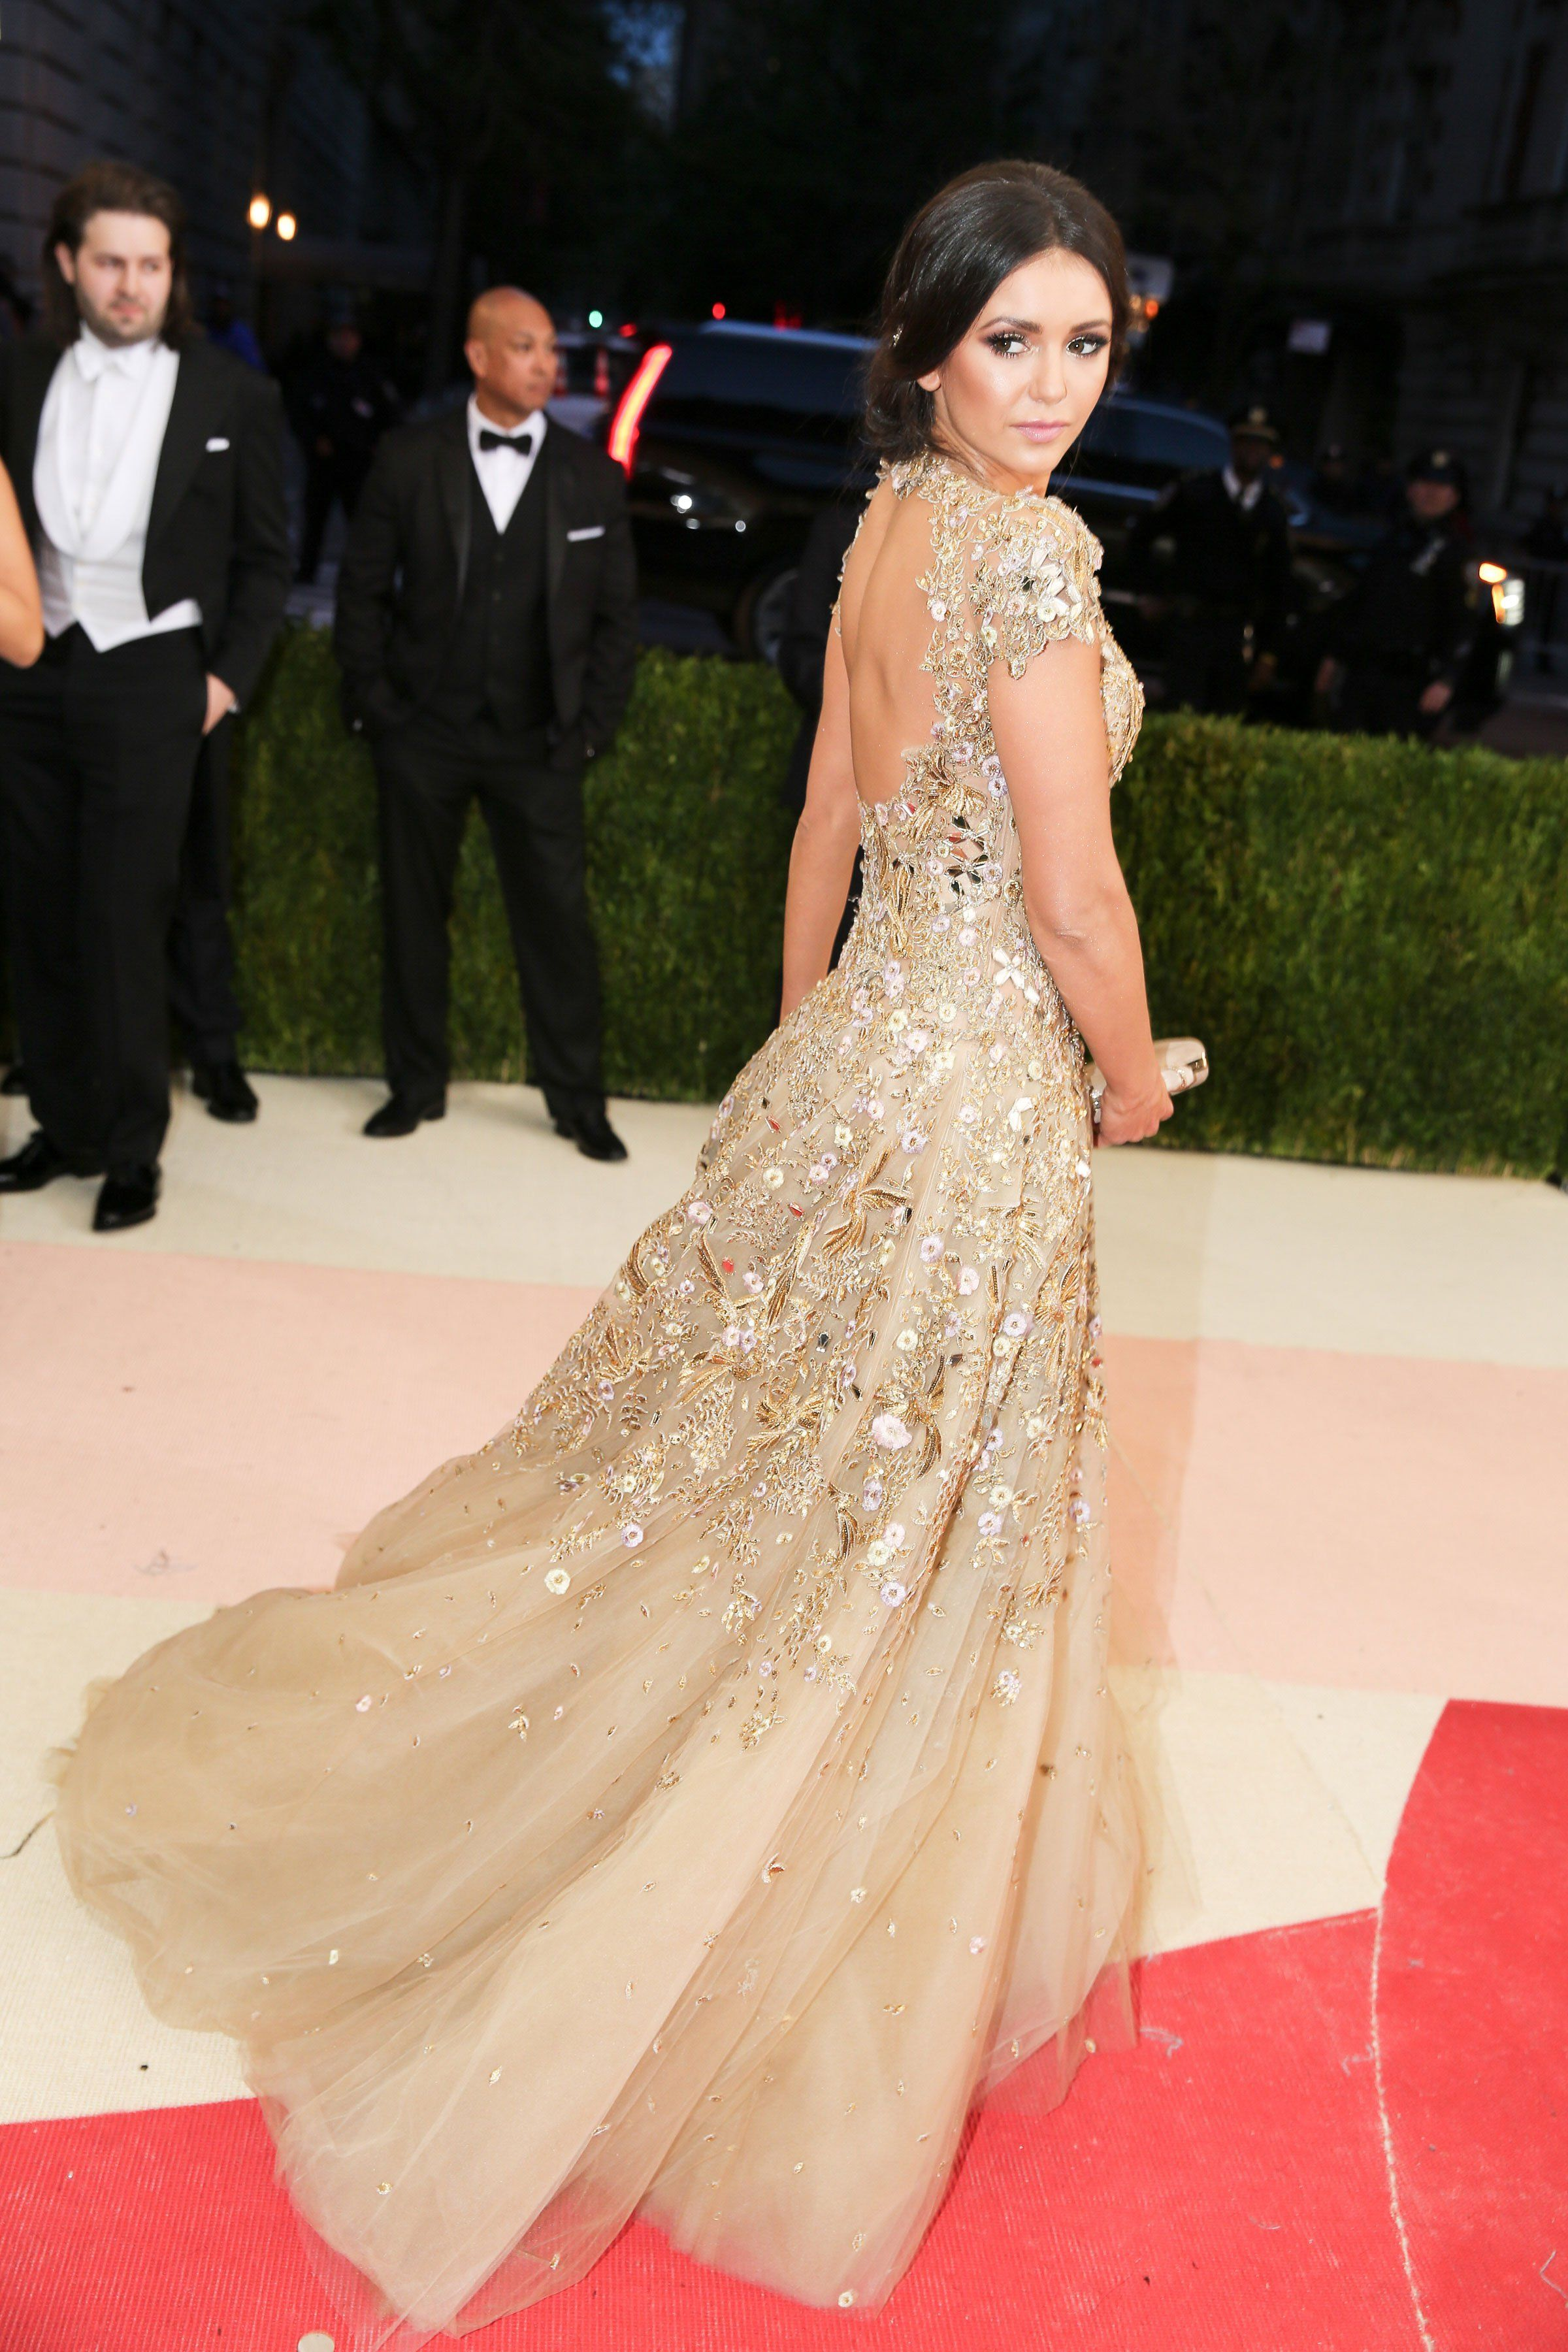 Vogue - Met Gala 2016: Fashion - Live from the Red Carpet - Nina Dobrev in Marchesa